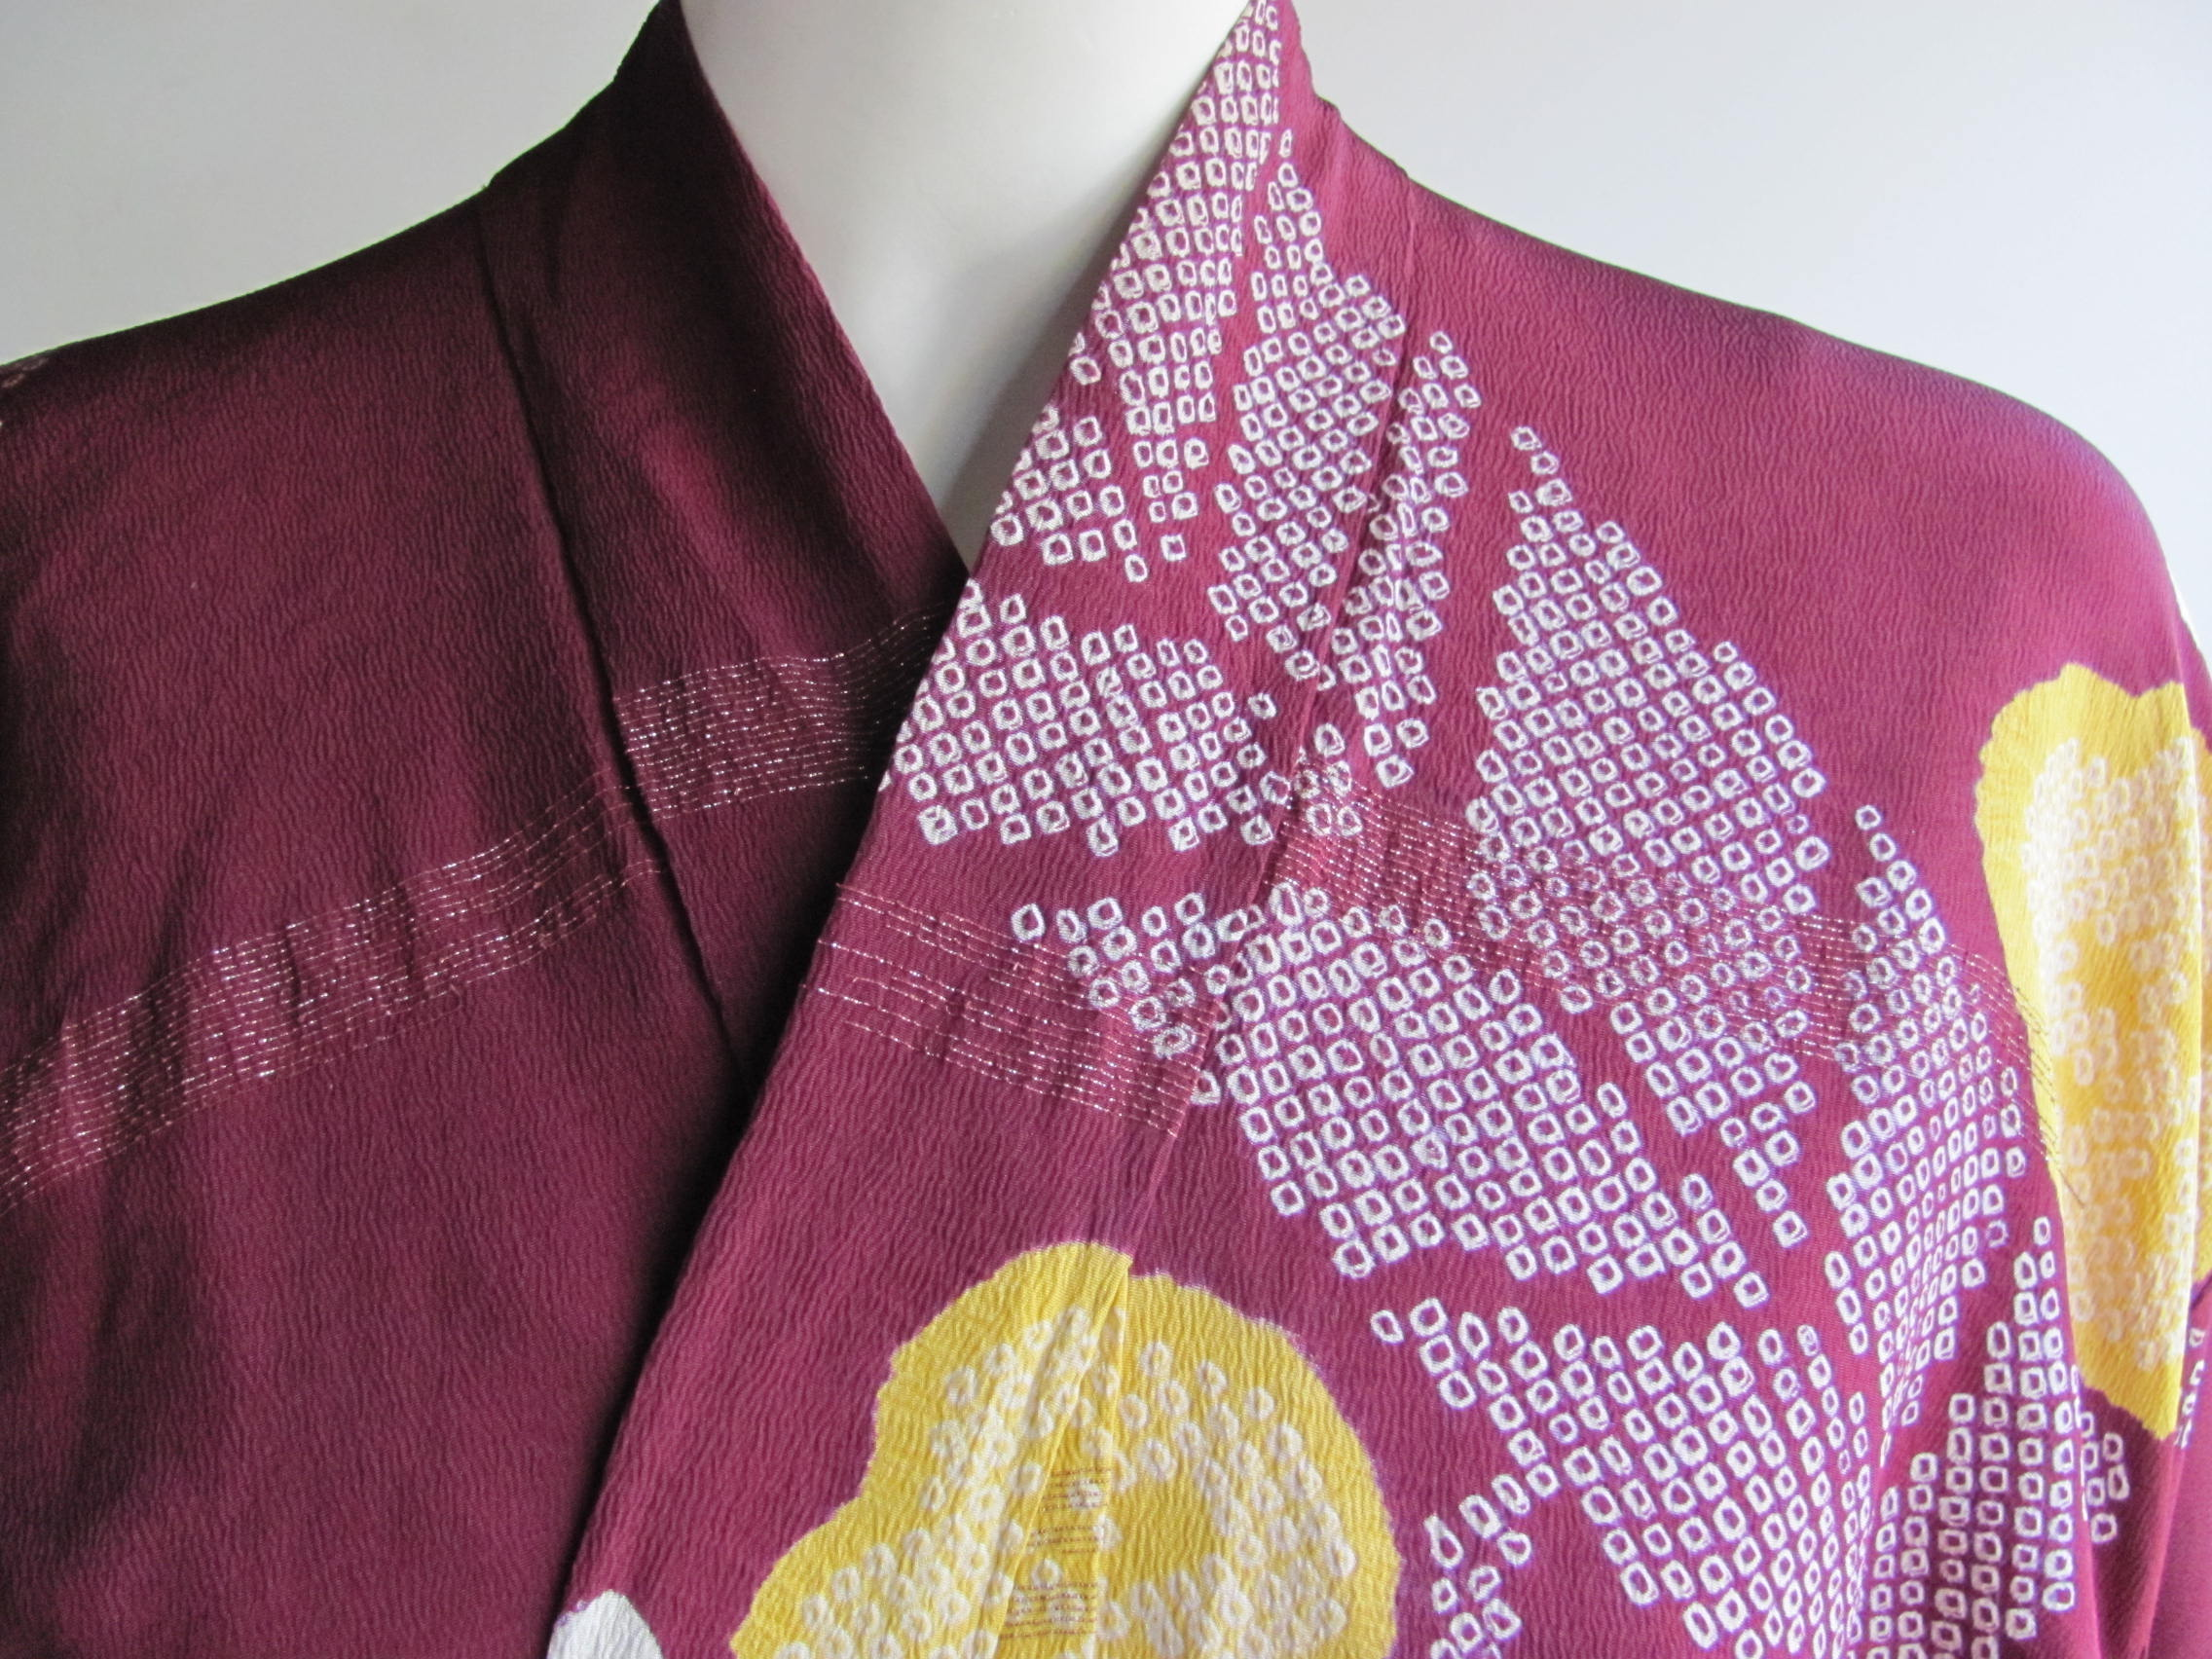 Silk, and dyed kimono: Japan